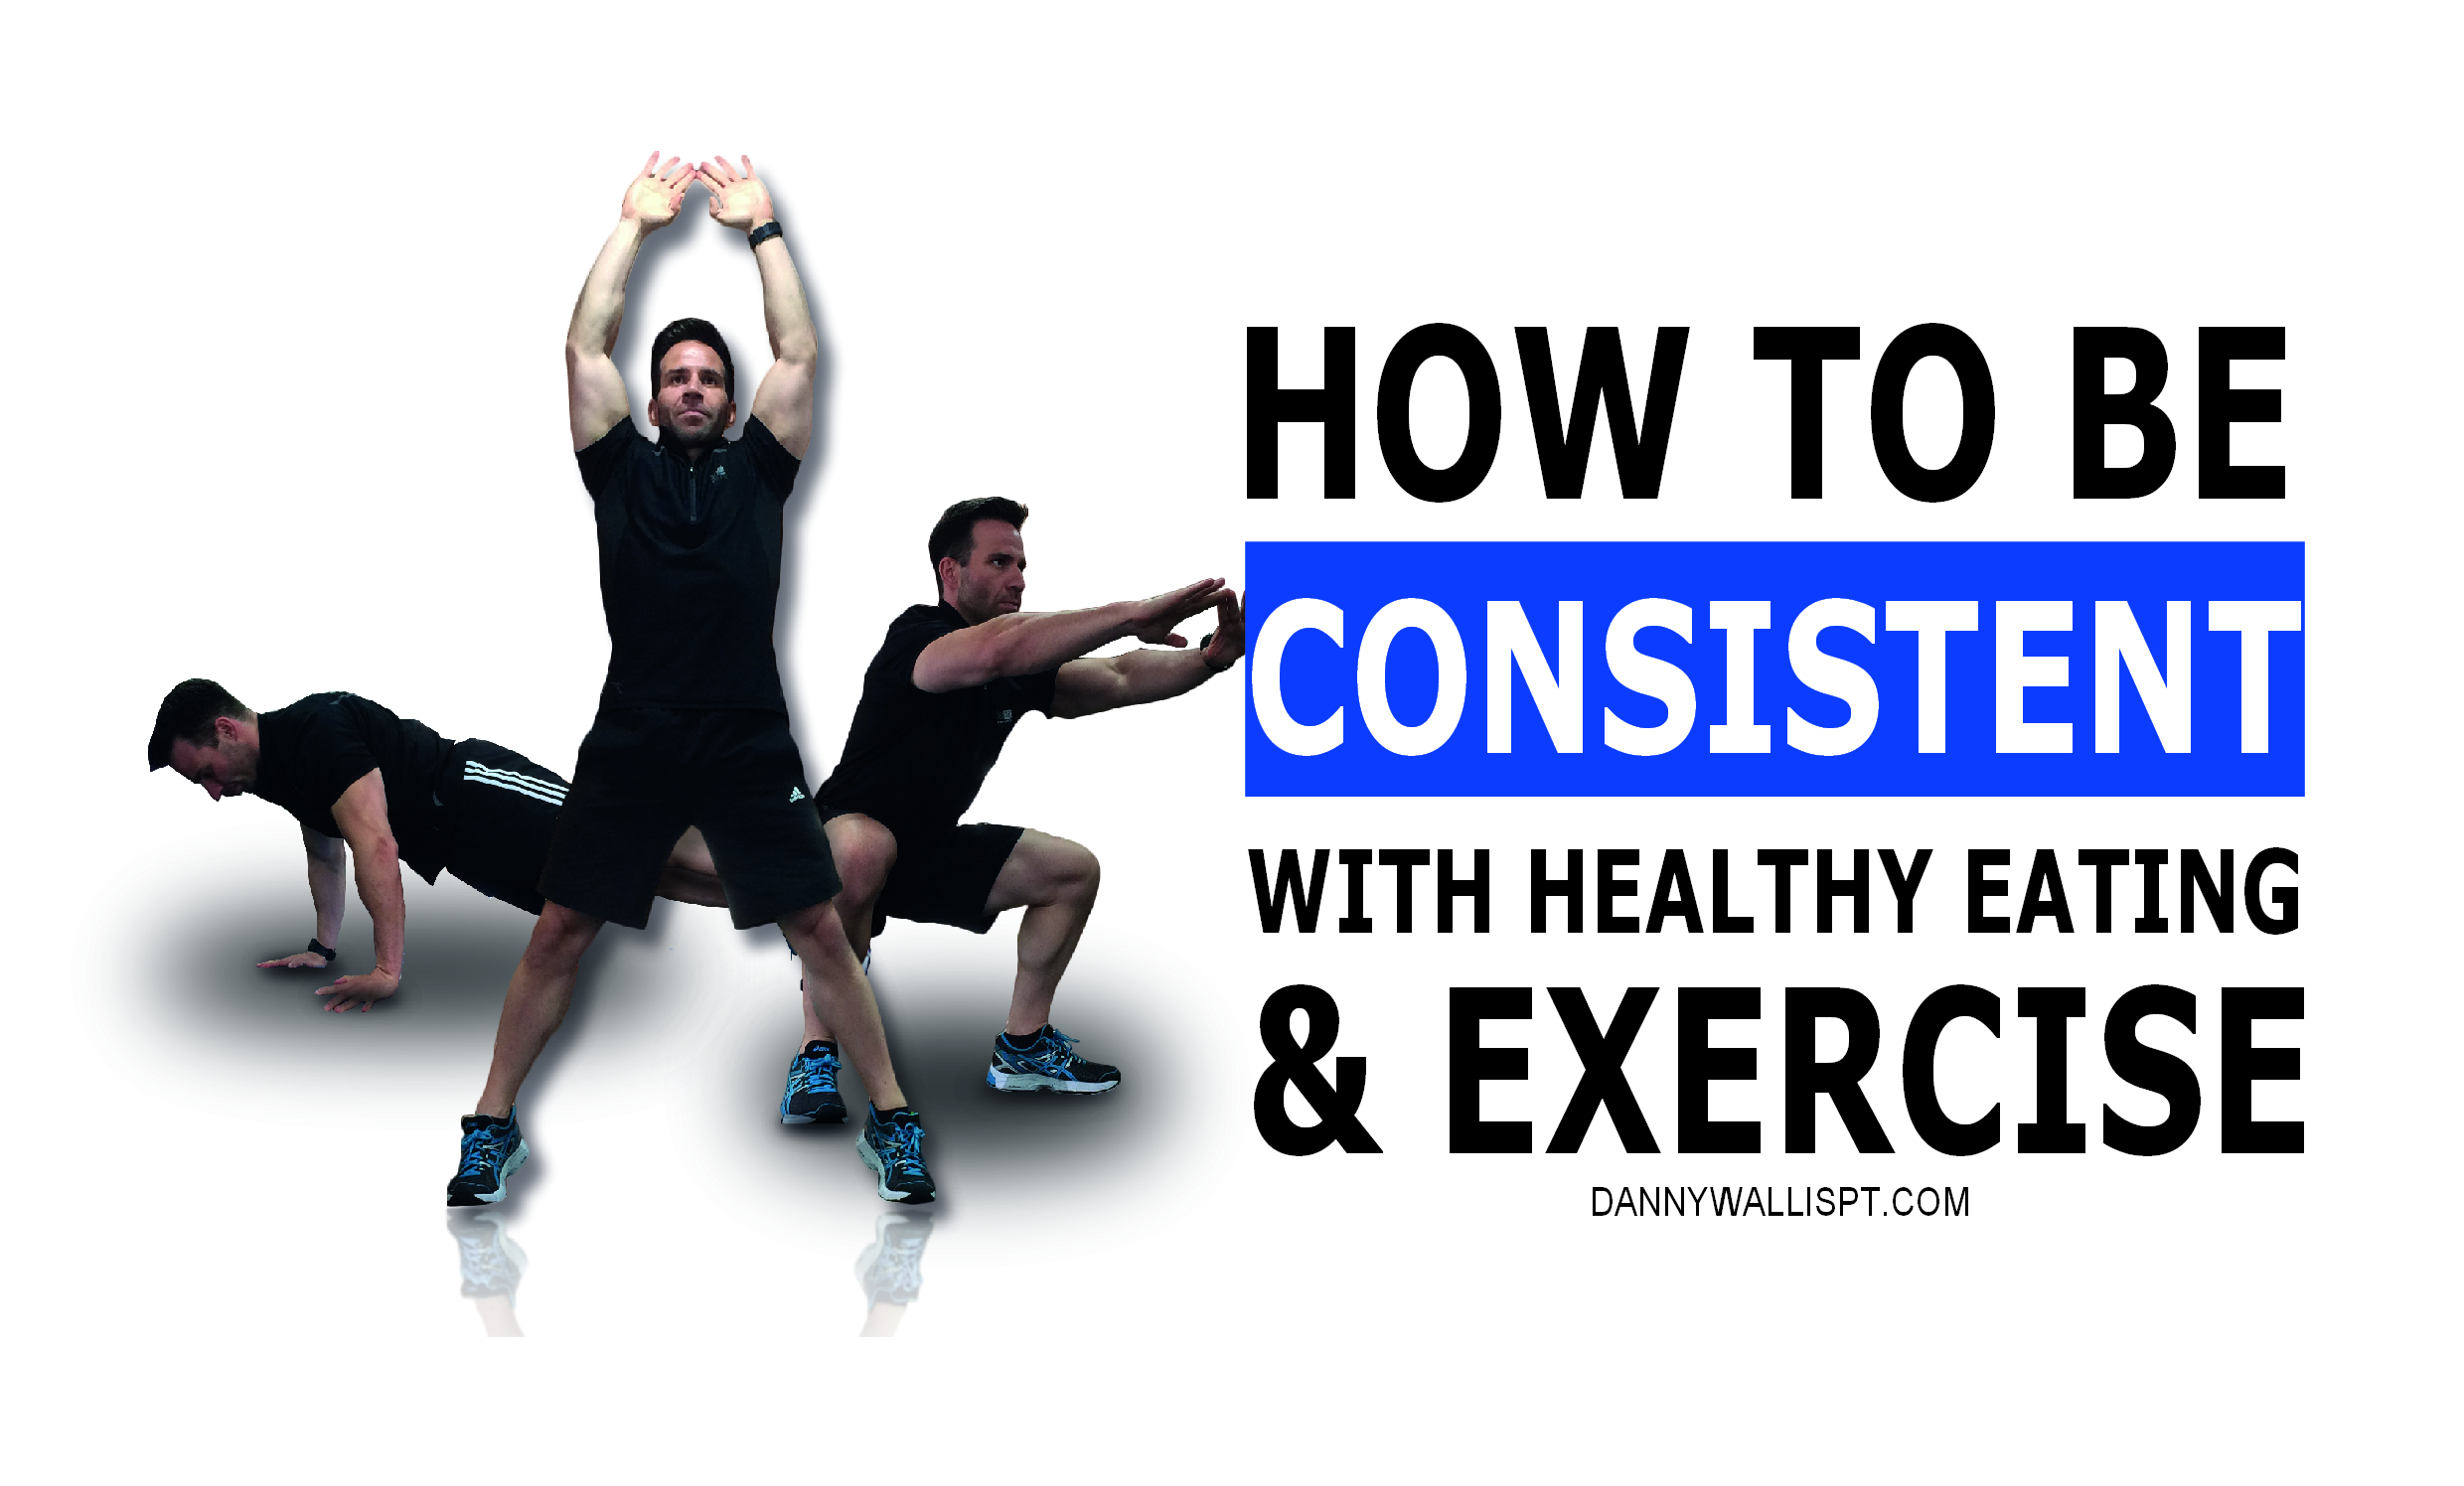 How to be consistent with healthy eating & exercise